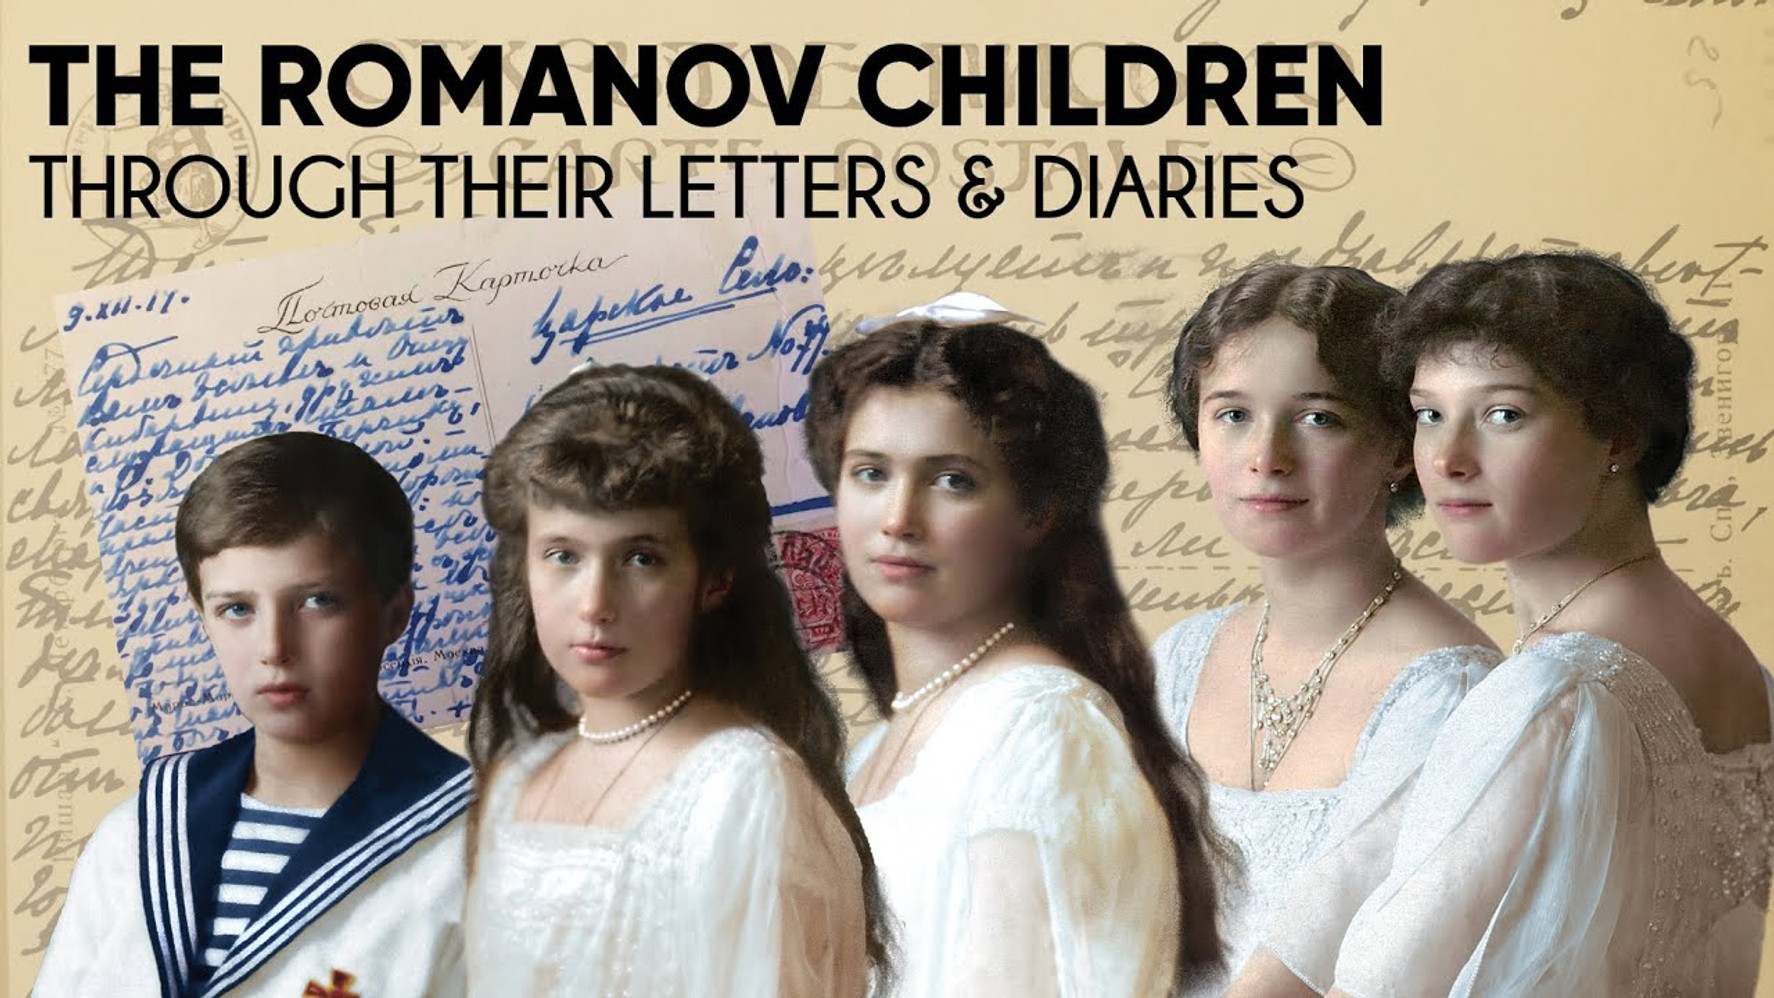 The Romanov Children through their Letters & Diaries